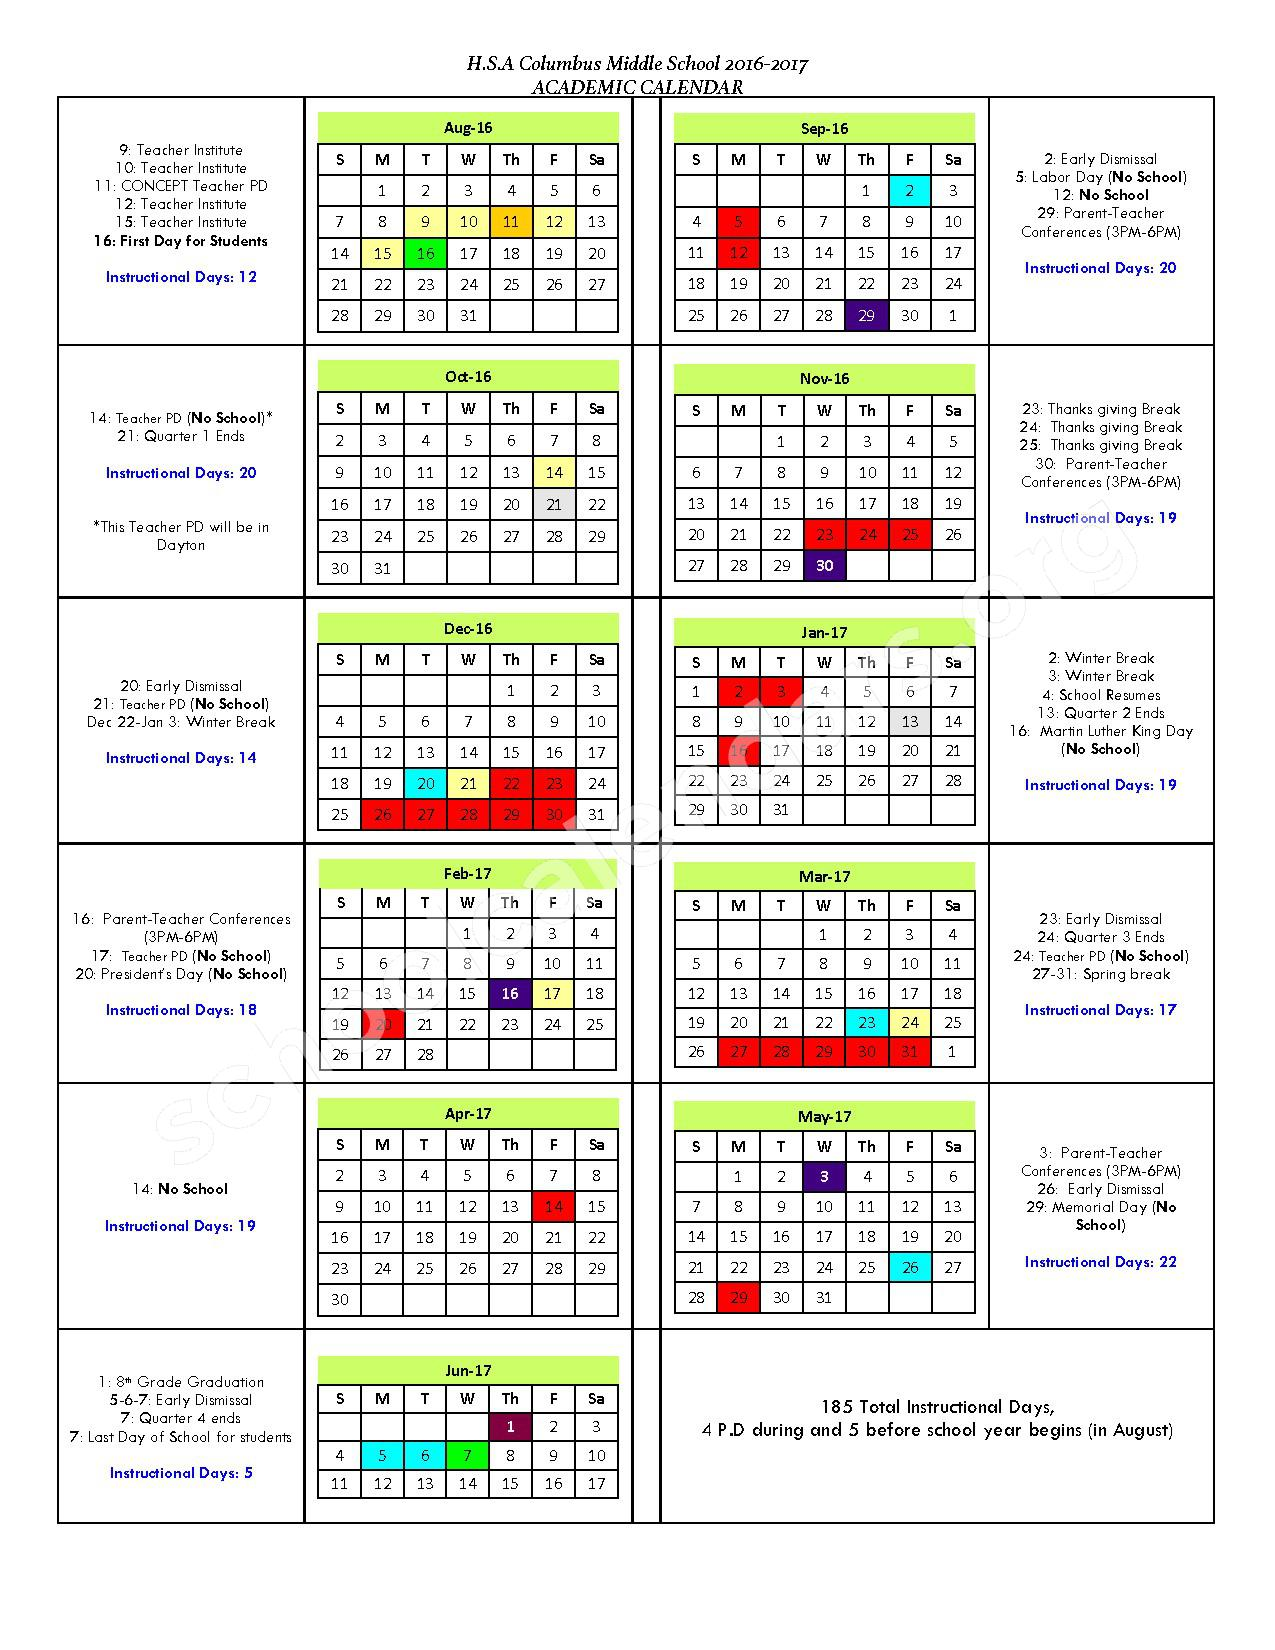 2016 - 2017 School Calendar – Horizon Science Academy Columbus Middle School – page 1